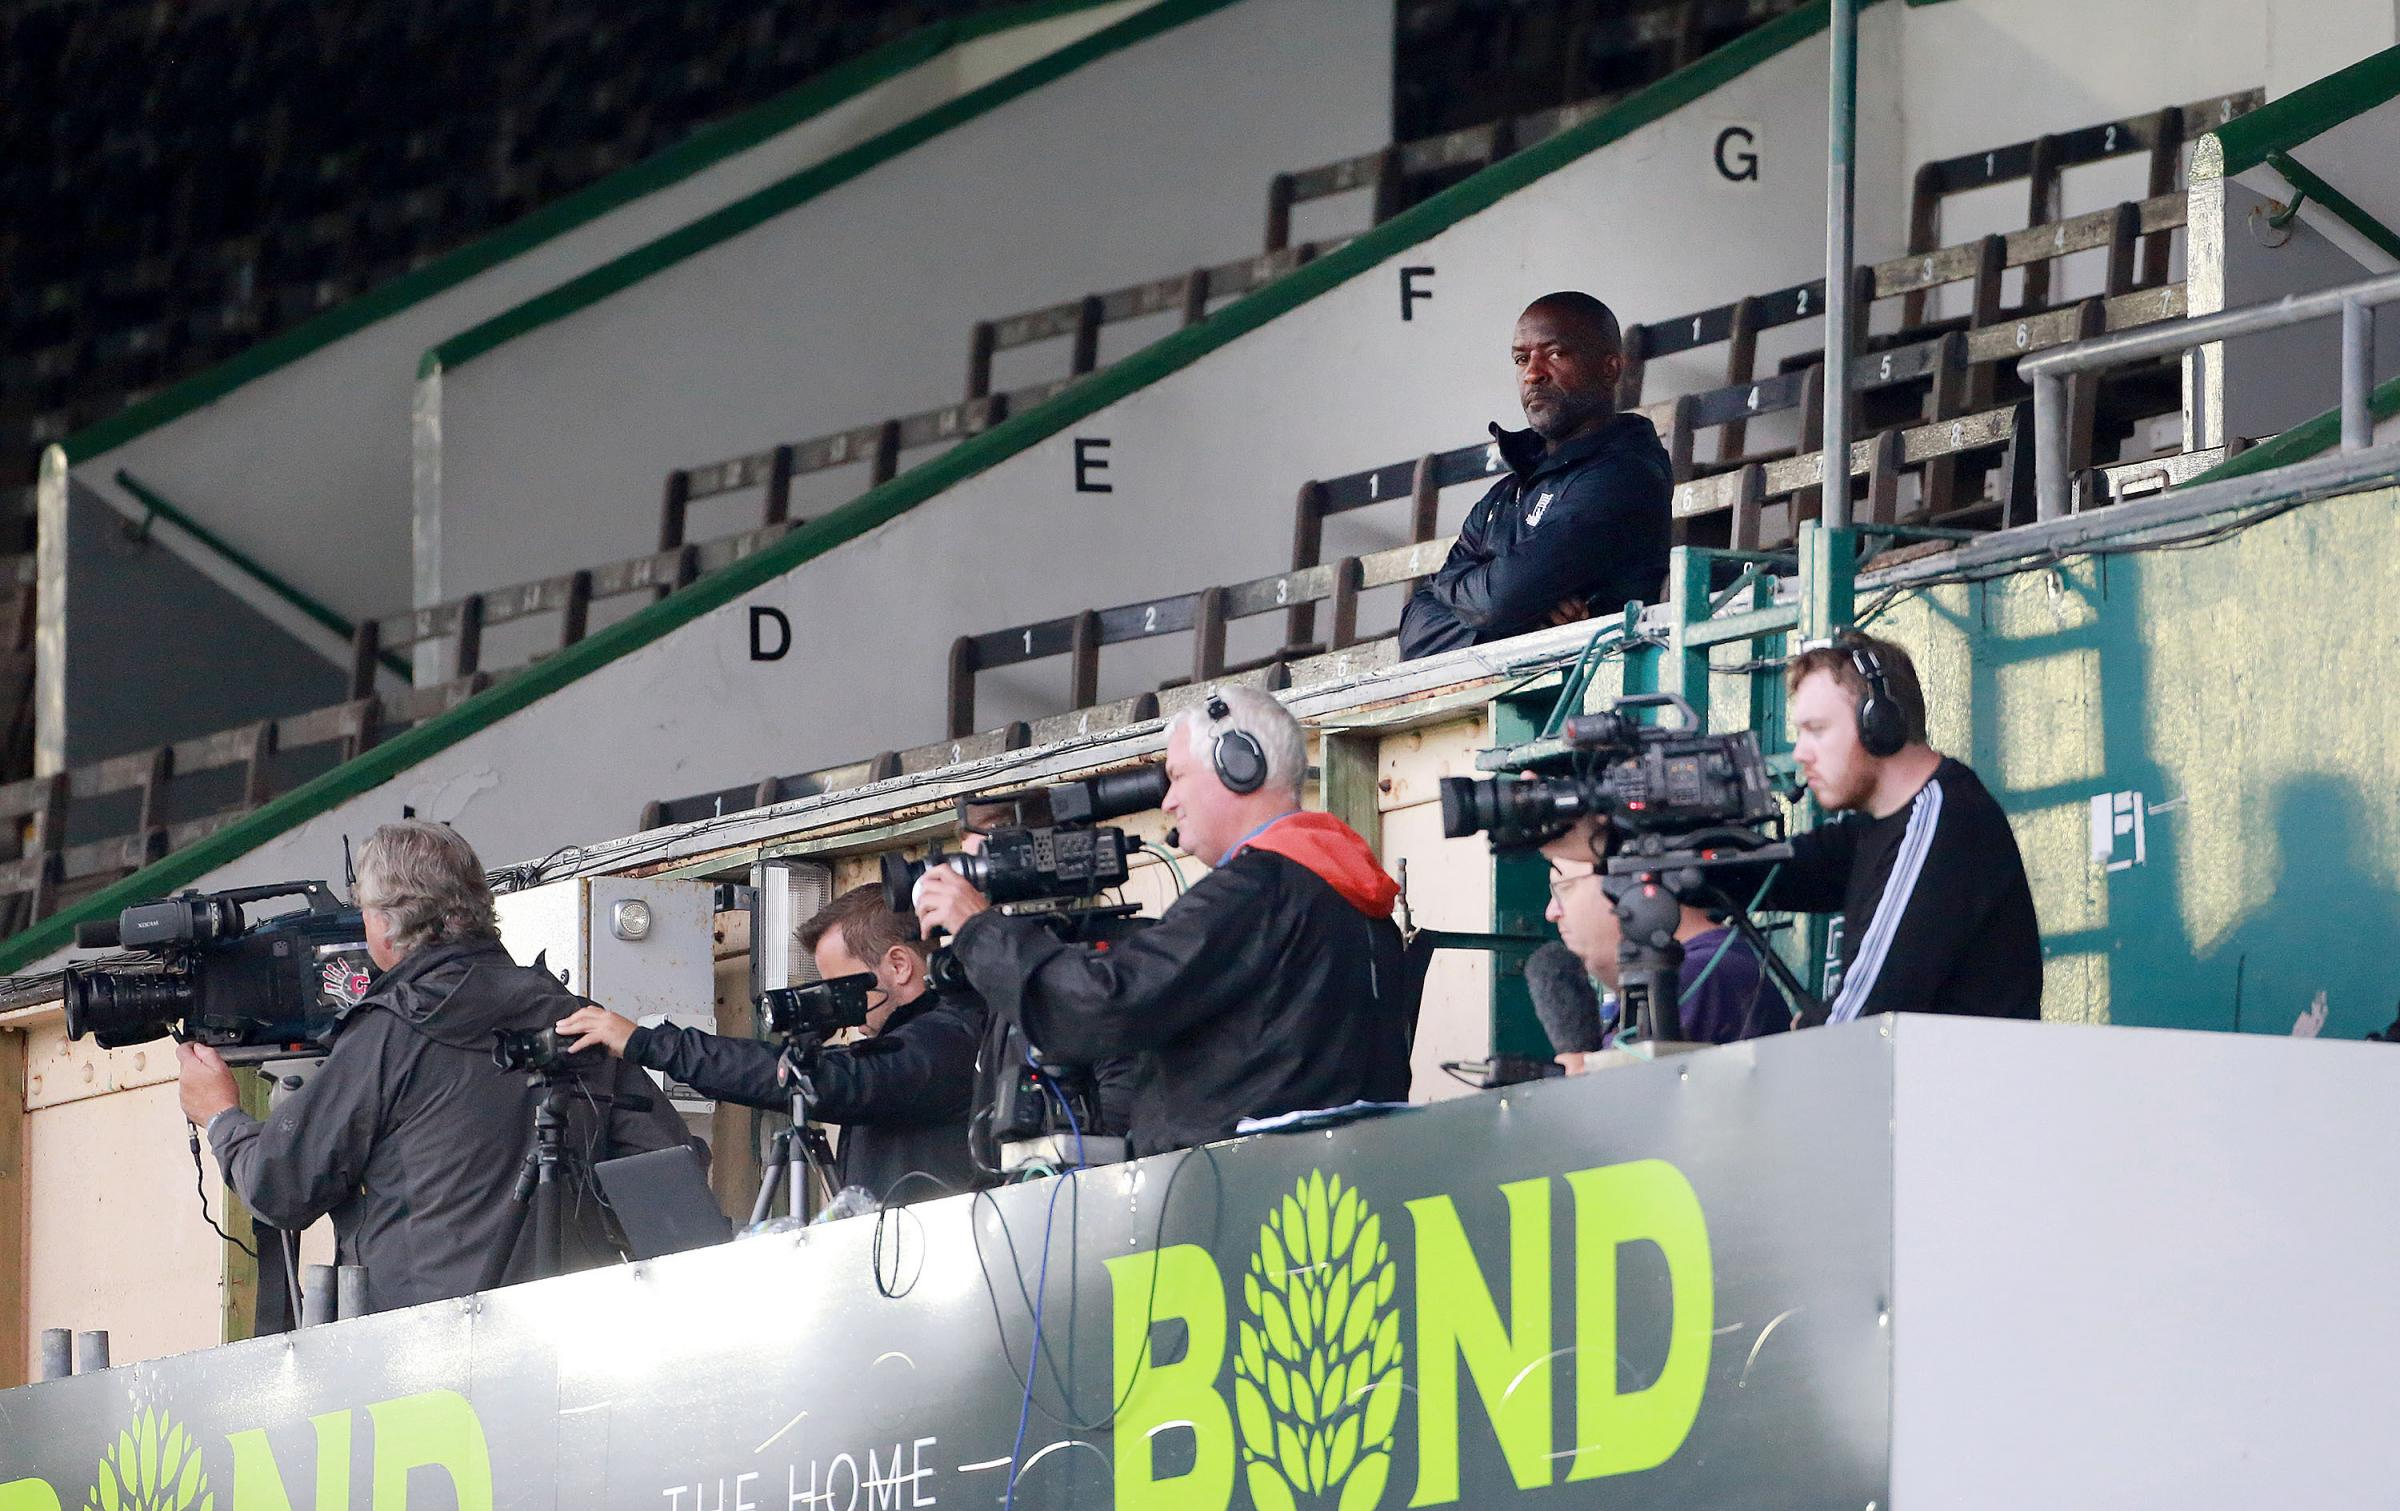 Watching on - Chris Powell was sent to the stands at Plymouth Argyle in August